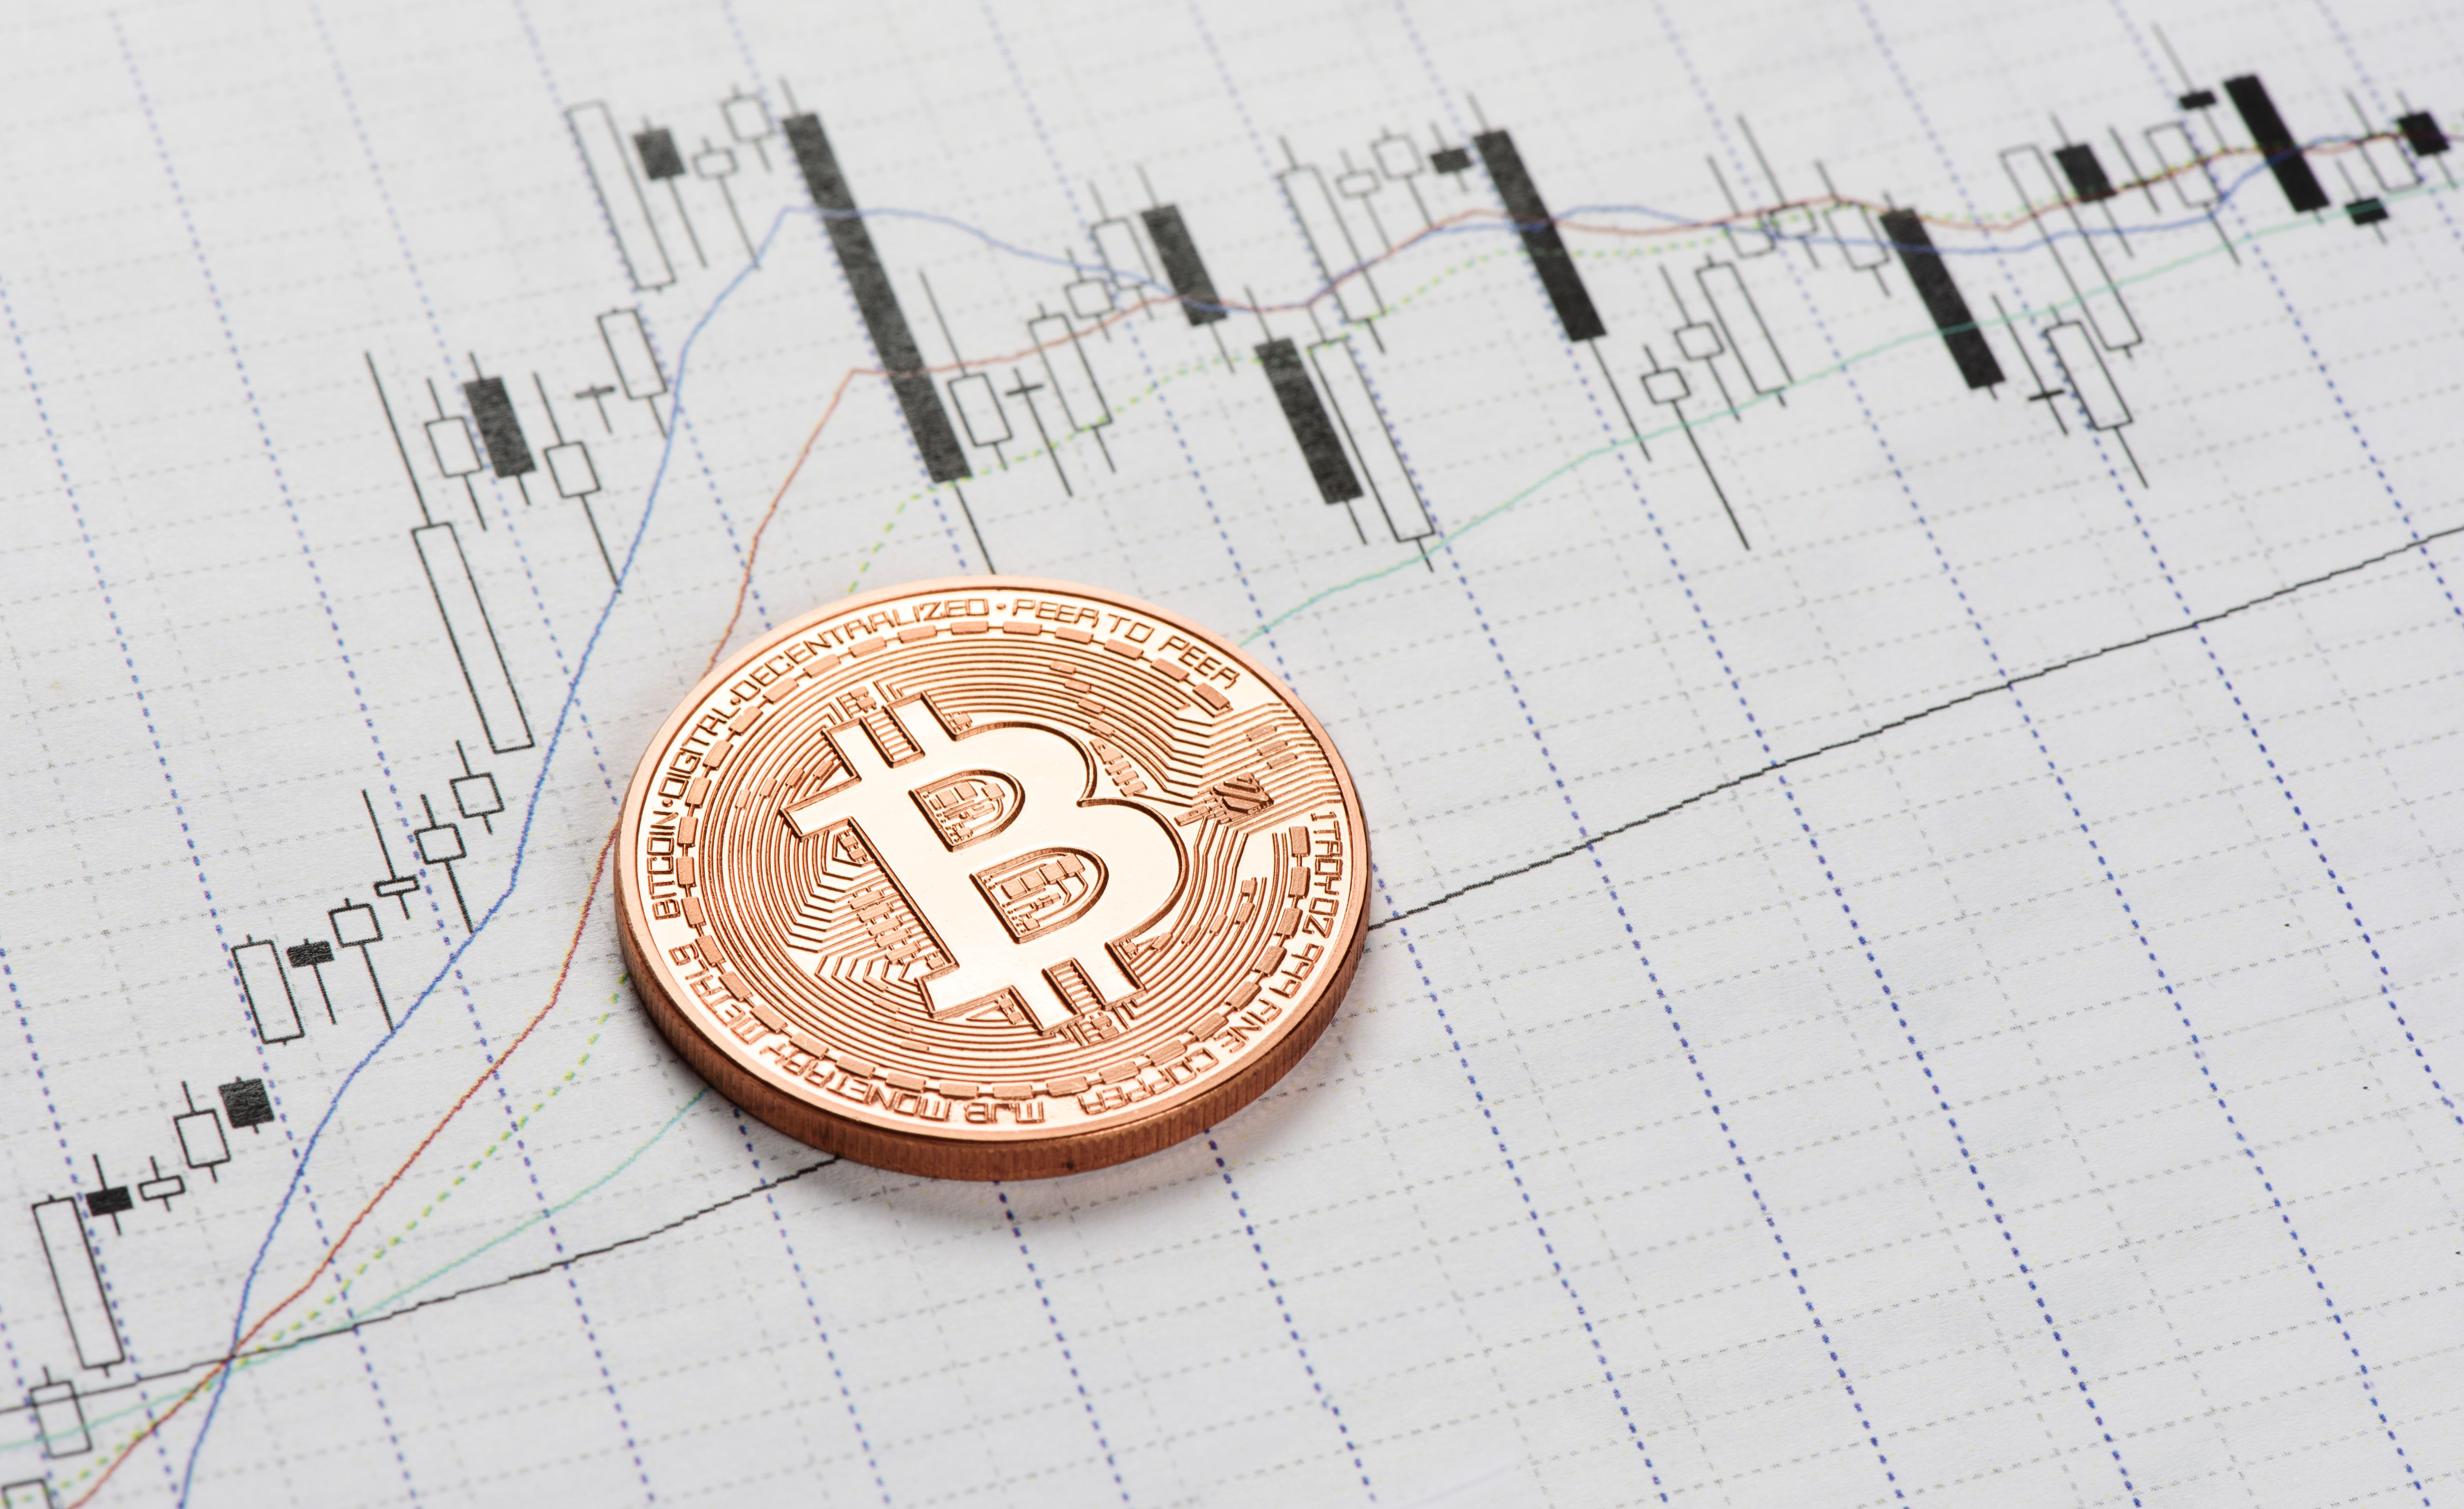 Bitcoin Increases as Square's Cash Trades in NY